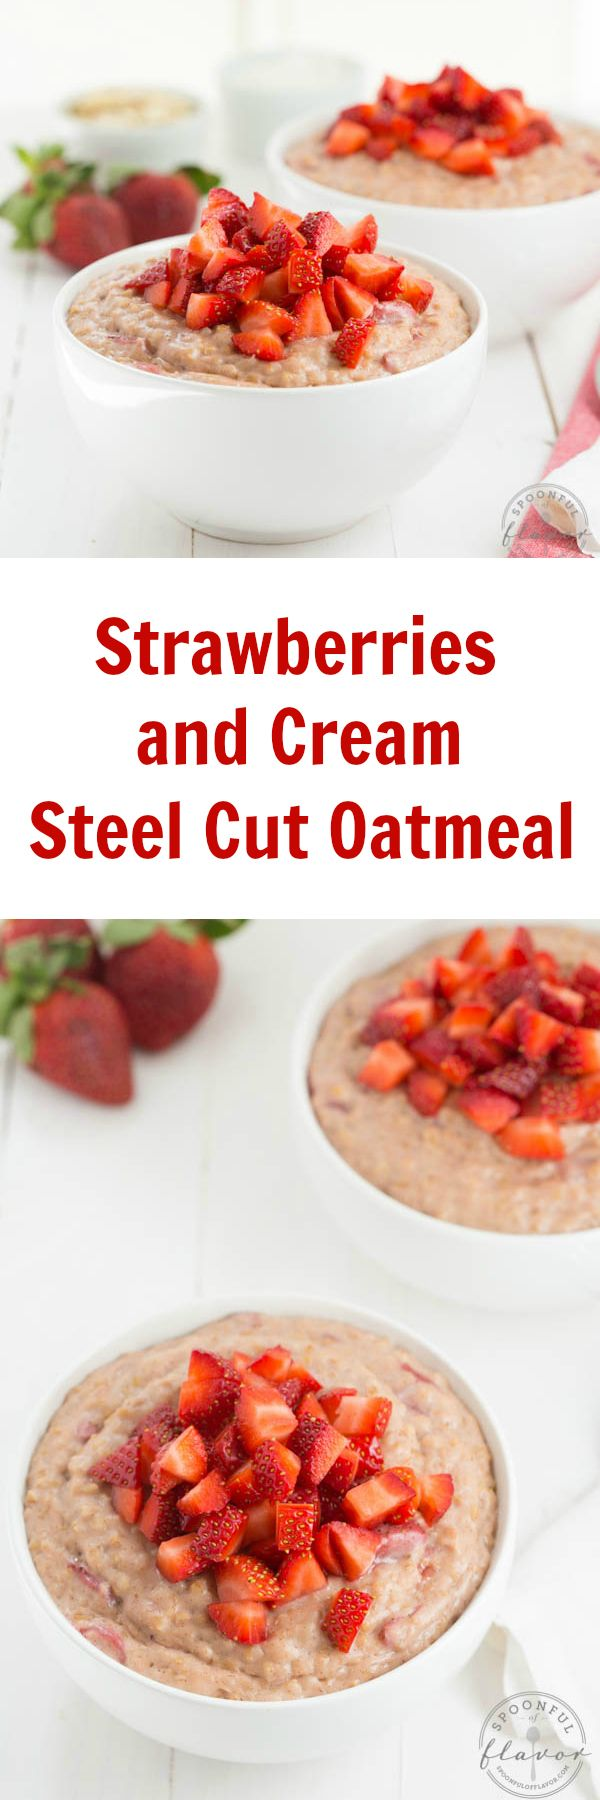 Strawberries and Cream Steel Cut Oatmeal - an easy recipe creates a bowl of fresh strawberry flavor!